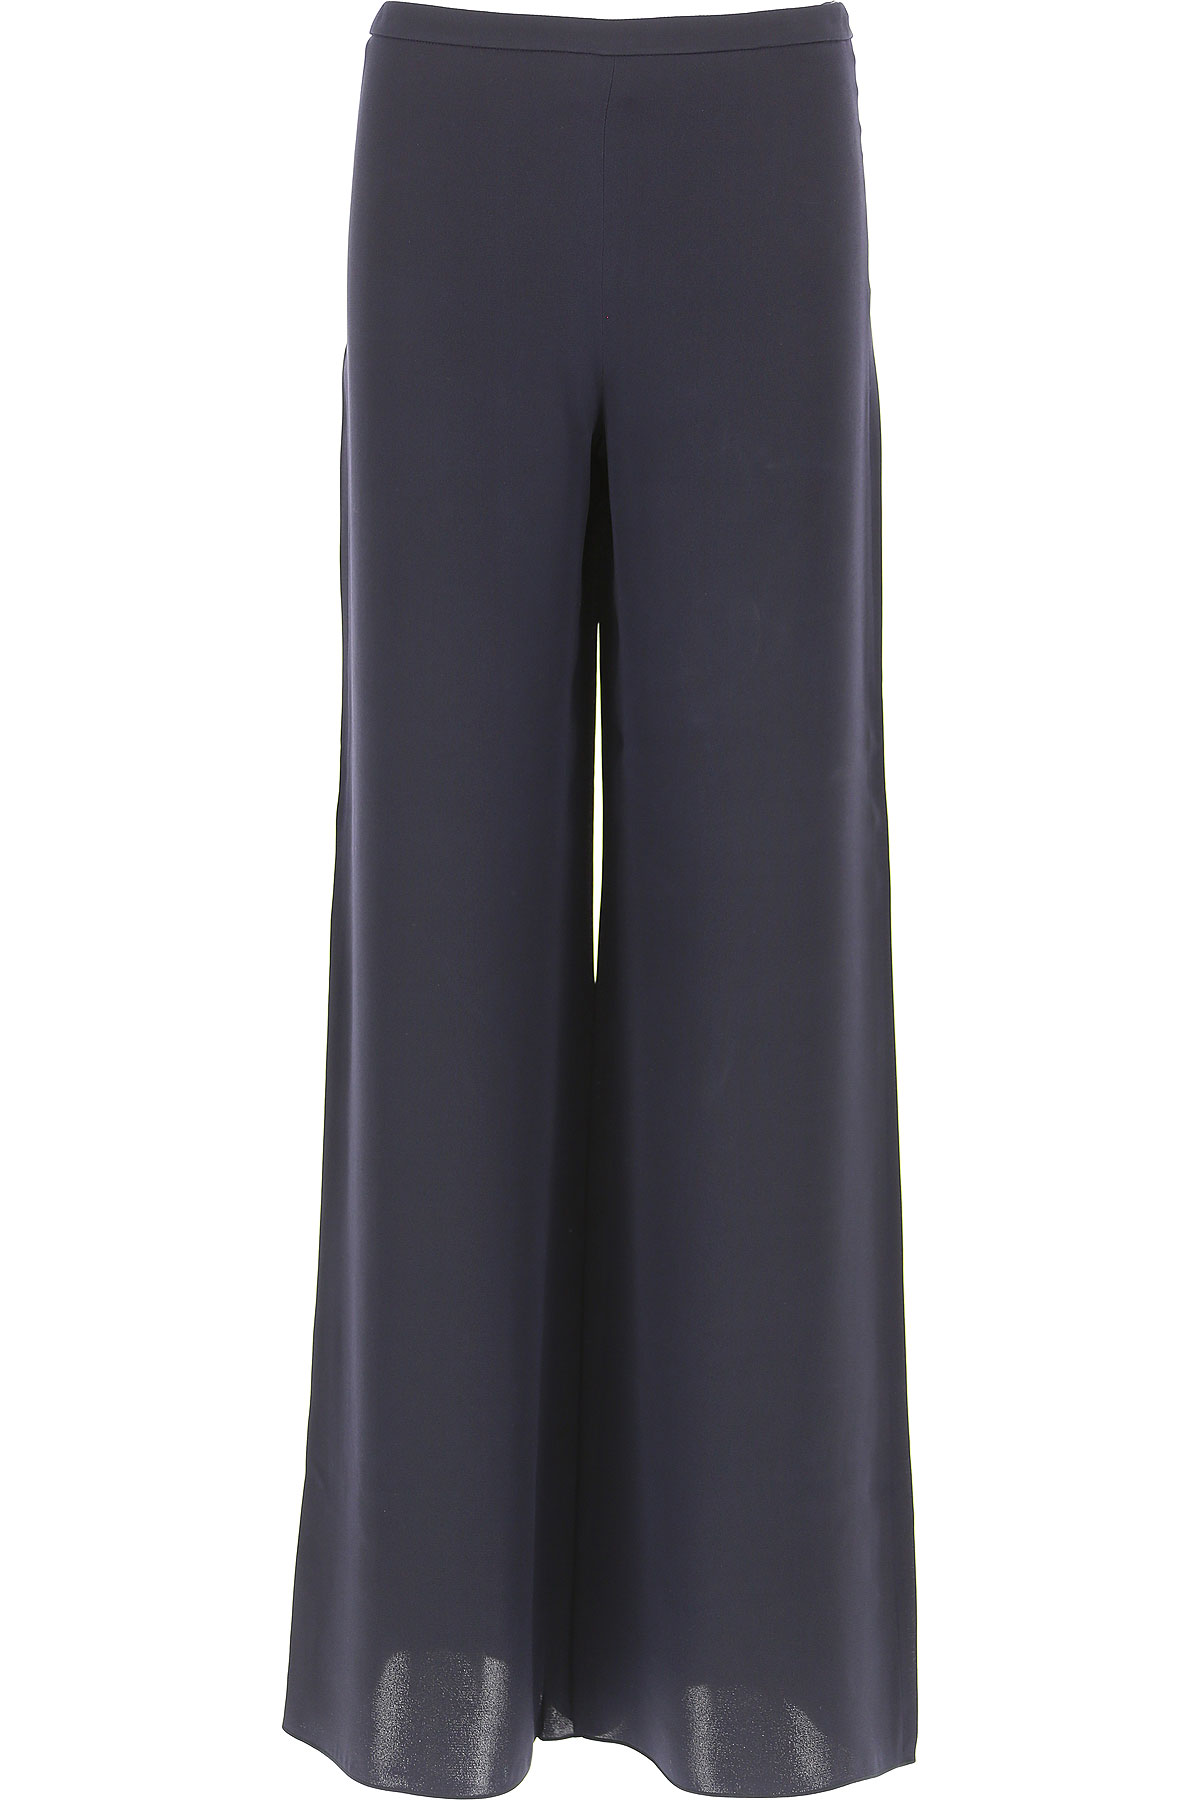 Image of Weekend by Max Mara Pants for Women, Blue, Silk, 2017, 26 28 30